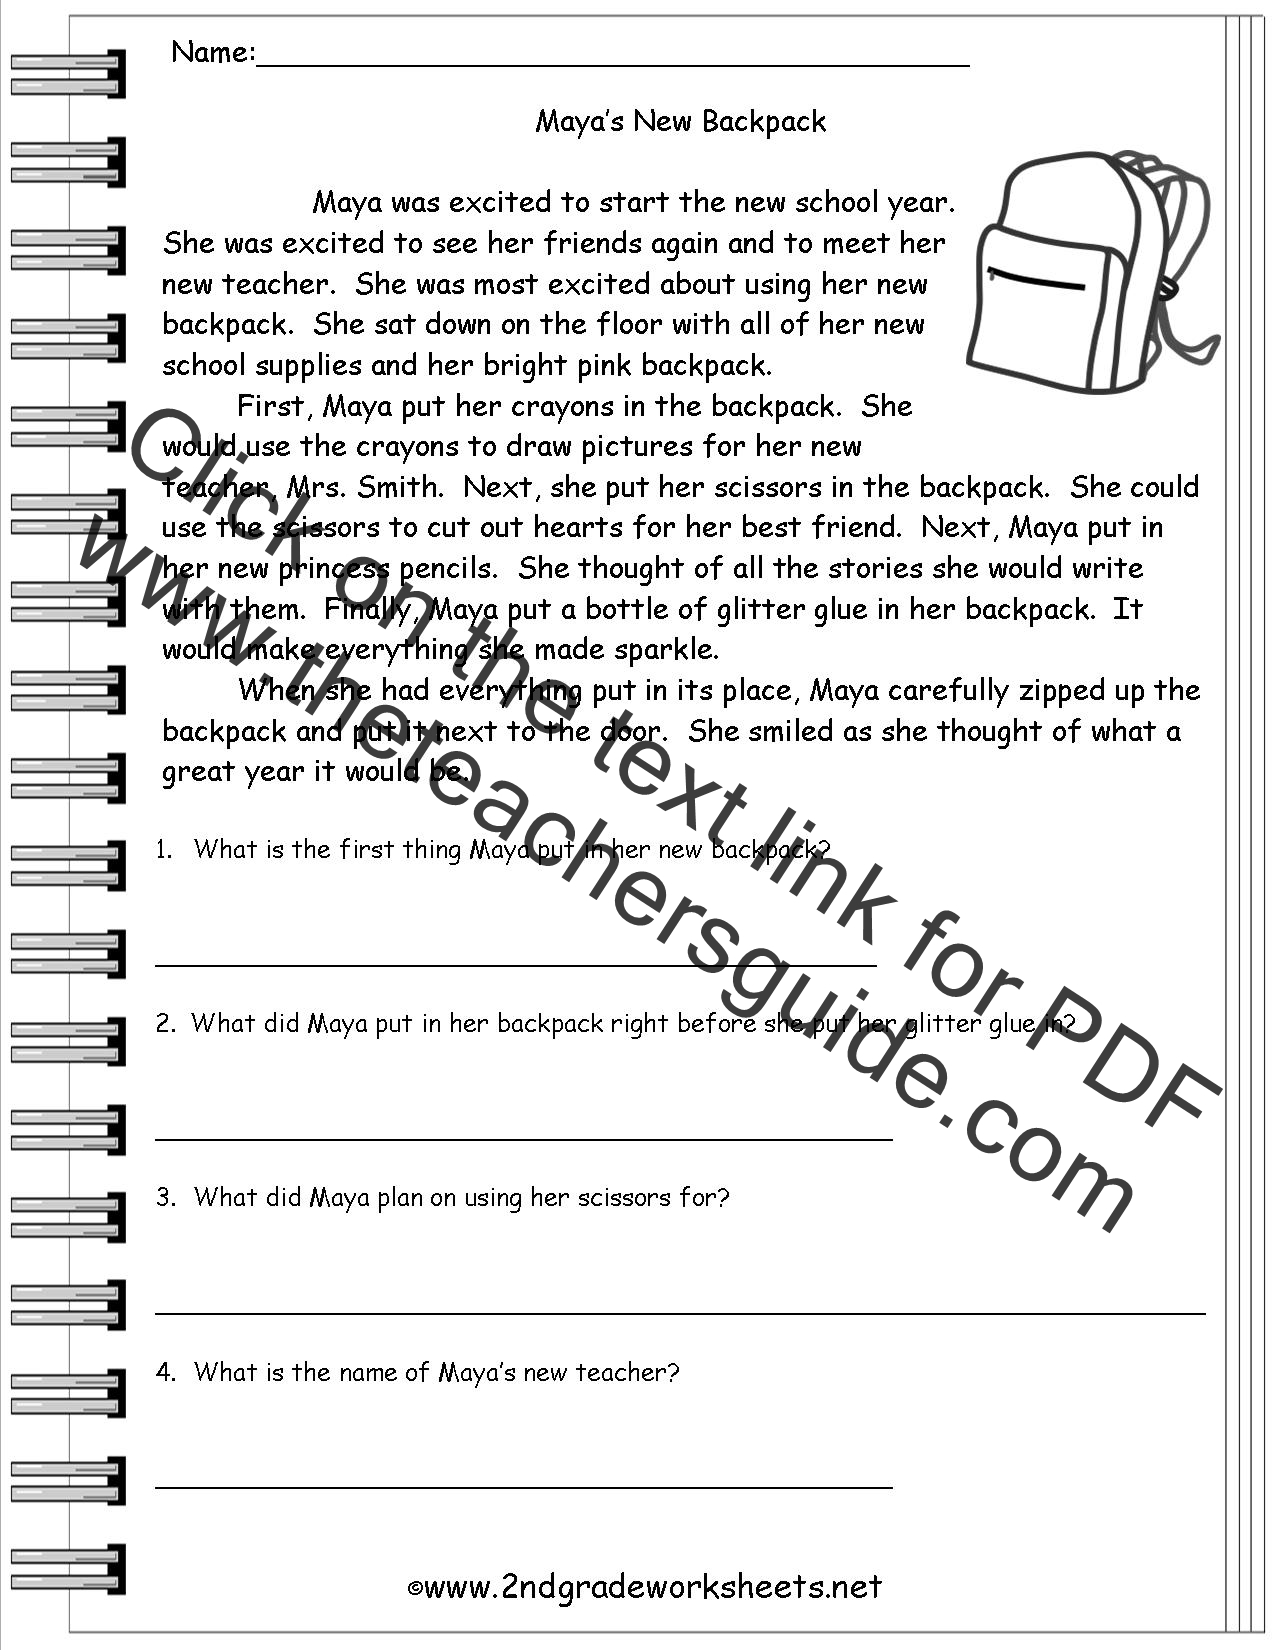 Free Back to School Worksheets and Printouts – Free Printable 7th Grade Reading Comprehension Worksheets